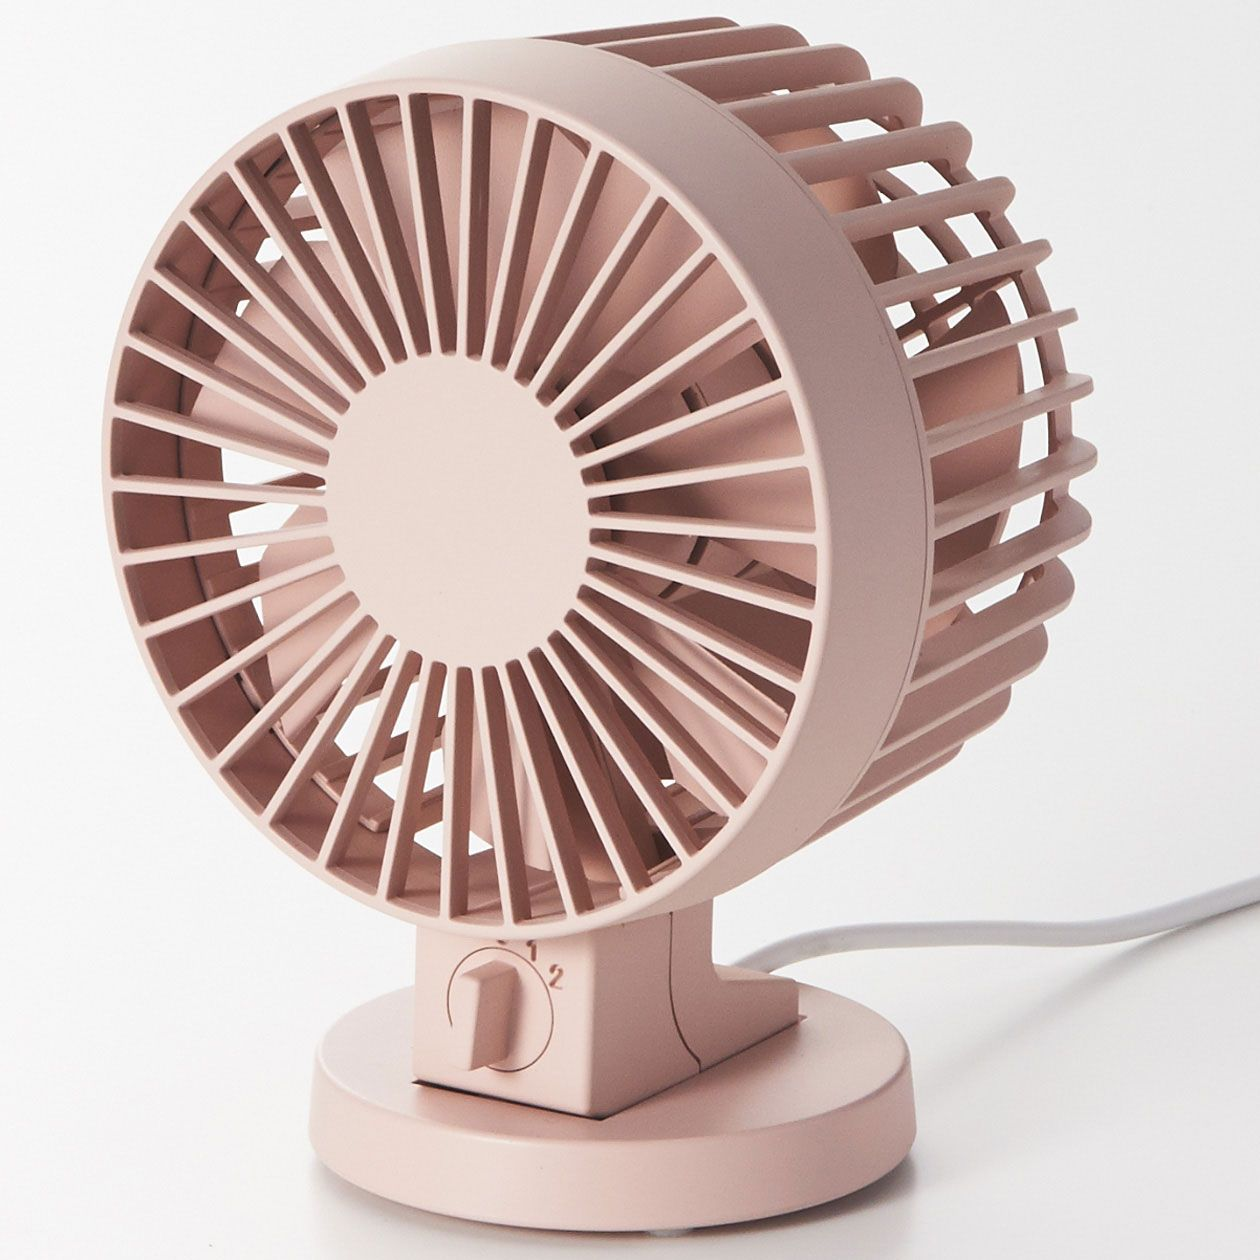 Muji Usb Desk Fan